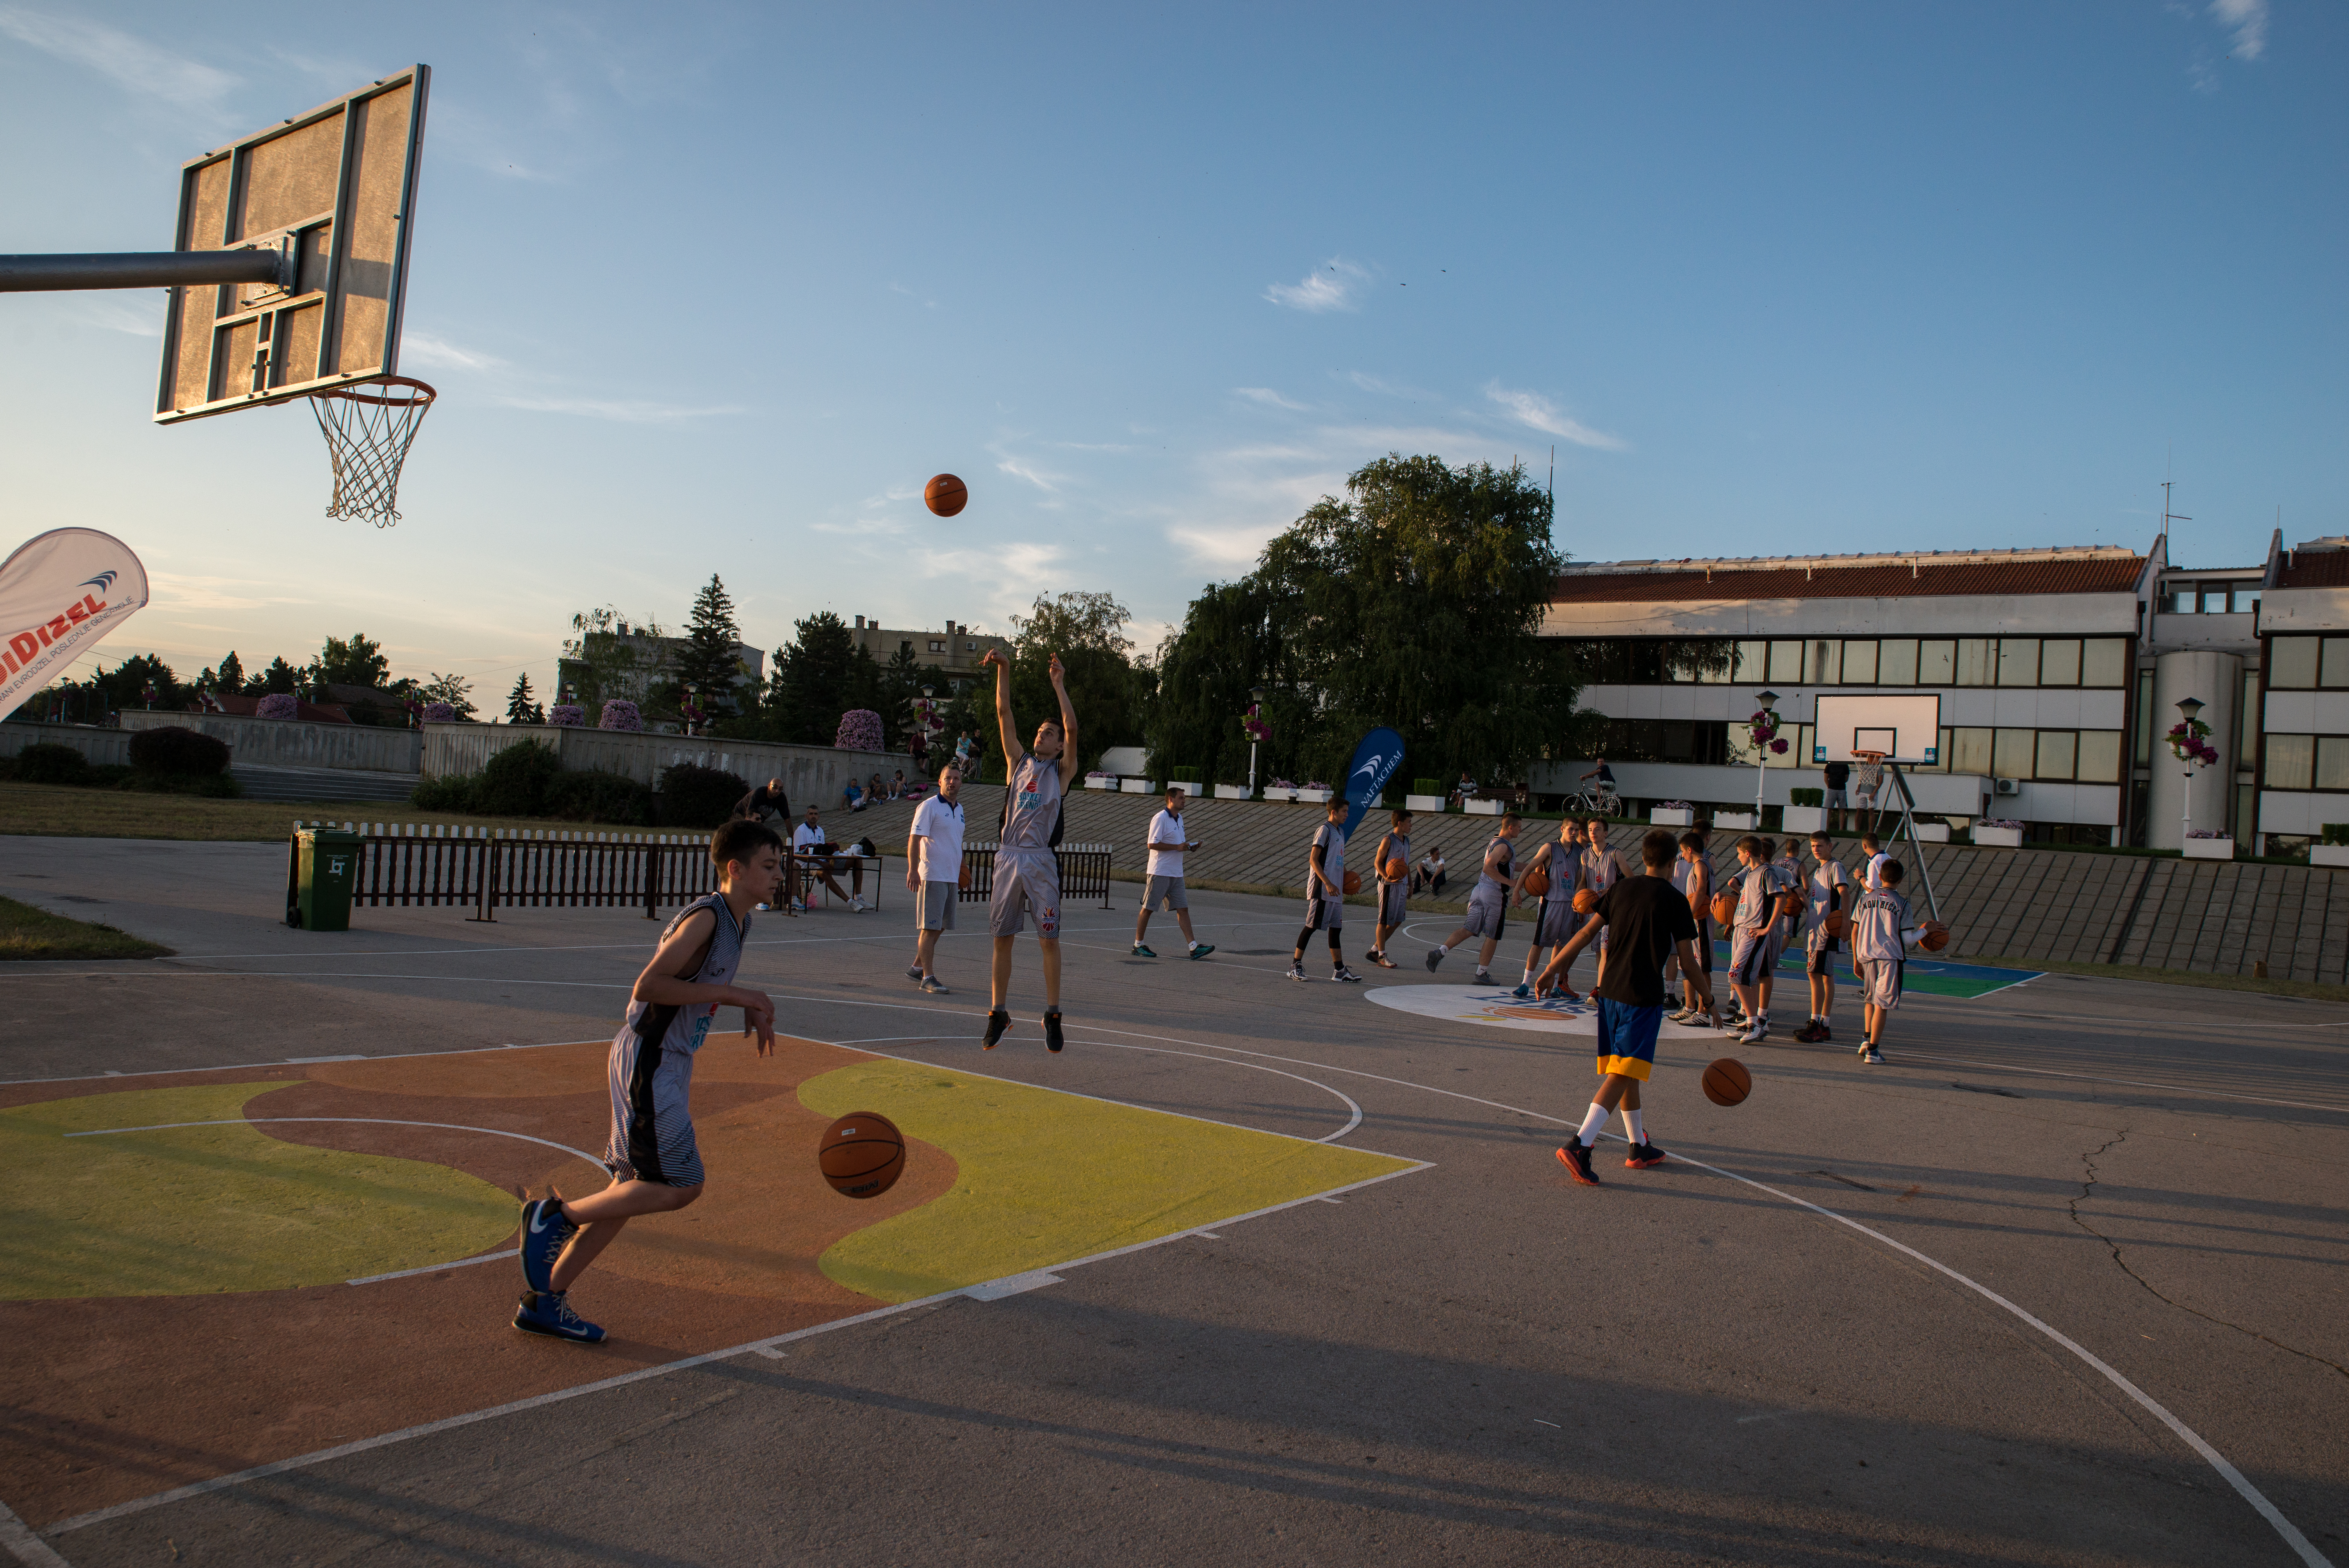 Basketfriends 2017. - preparation for the competition